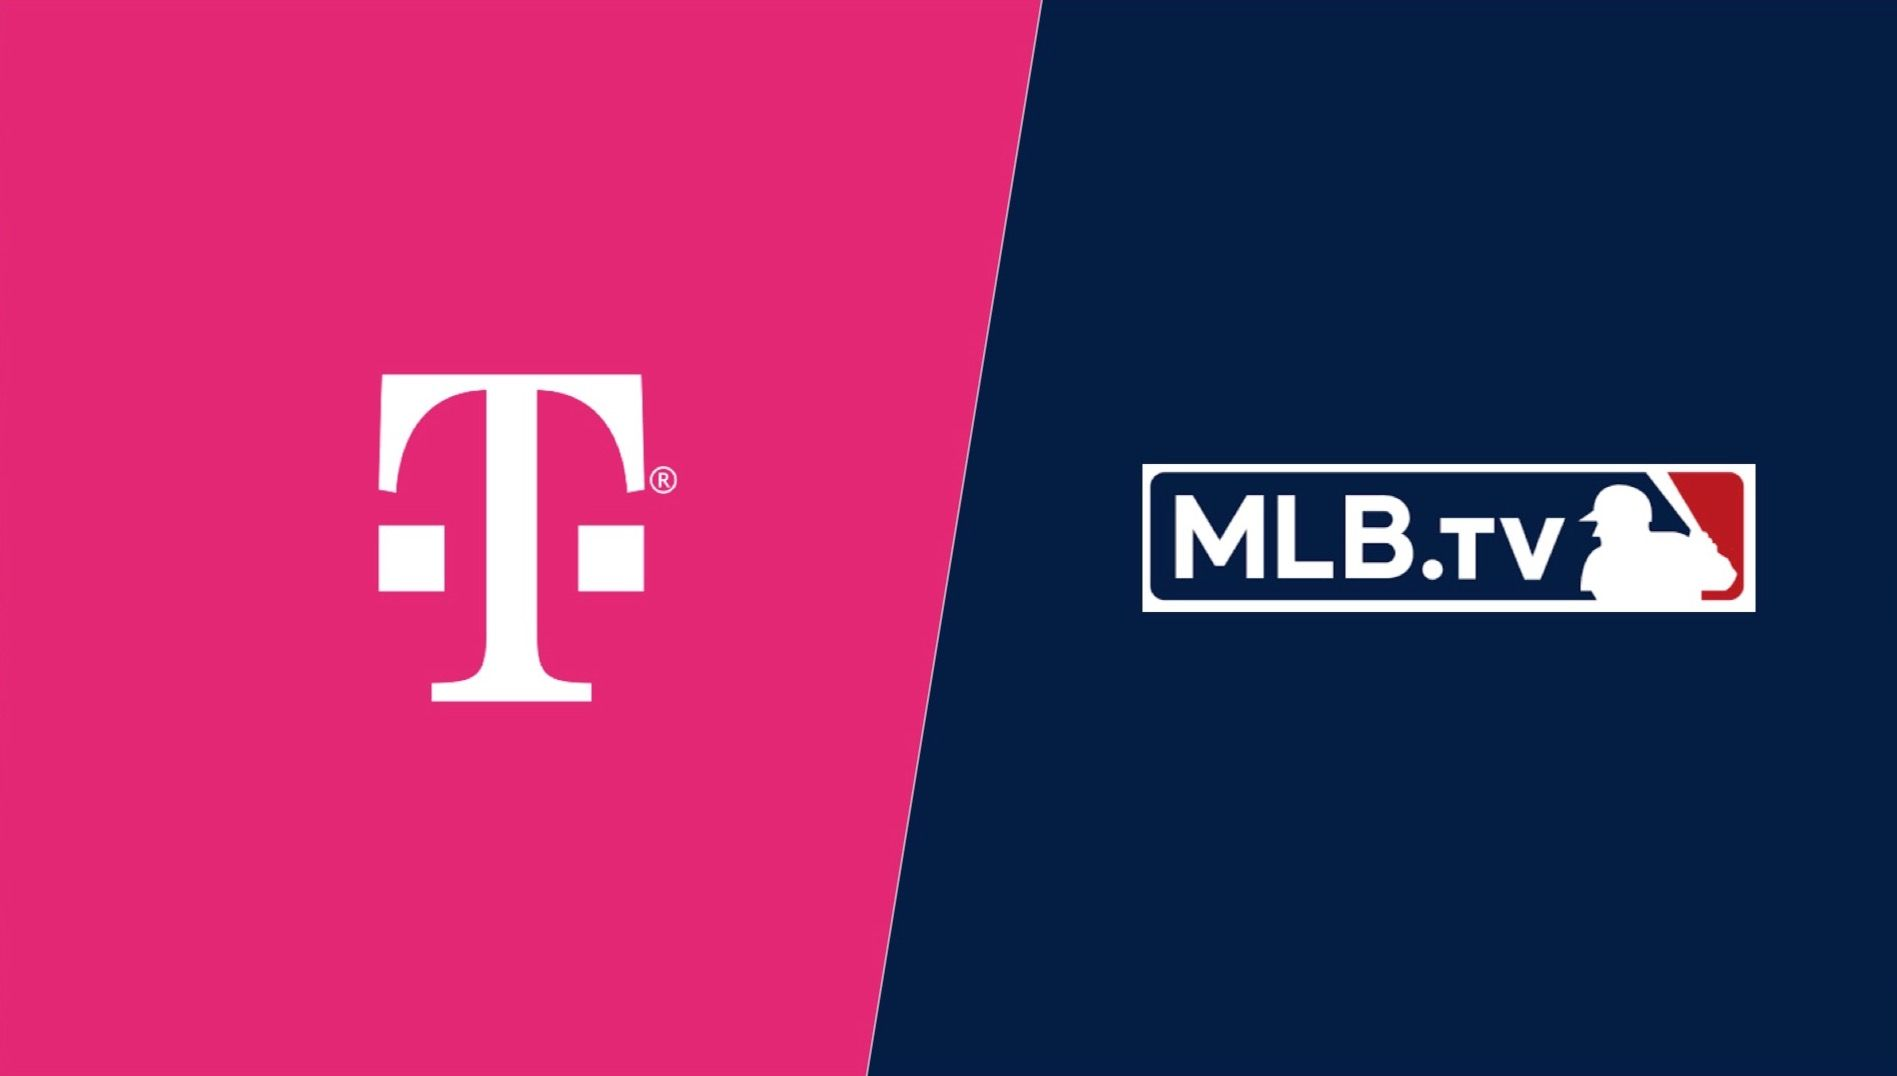 T Mobile Subscribers Will Get Mlb Tv For Free Again In 2020 In 2020 Subscribe Free Favorite Team